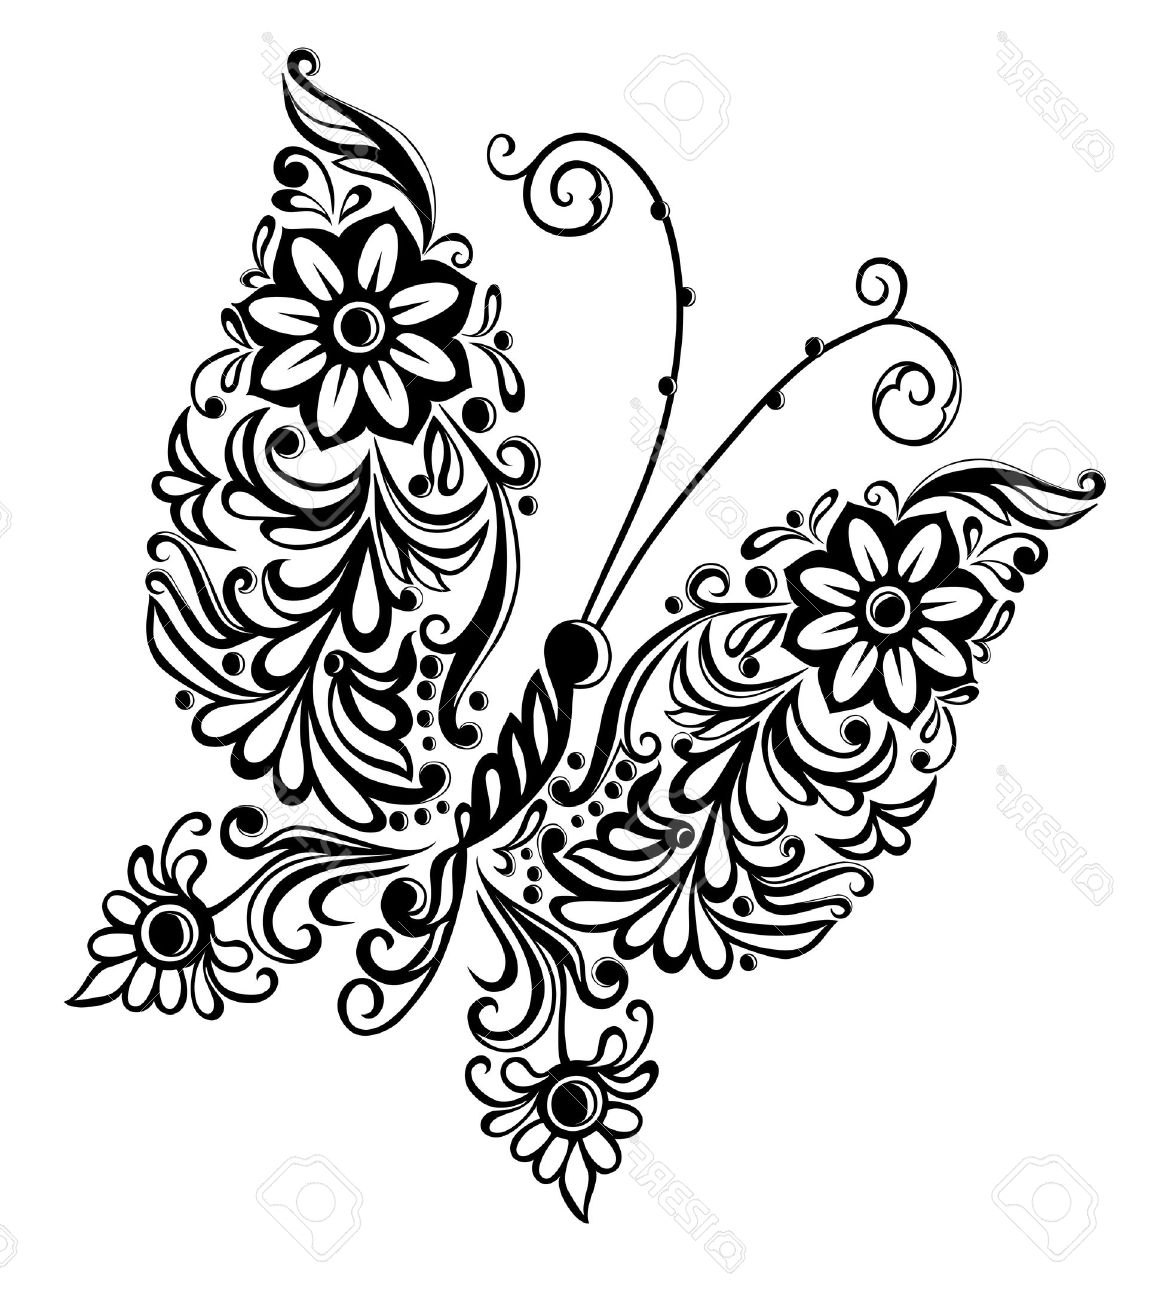 Butterfly Drawing Black And White At Getdrawings